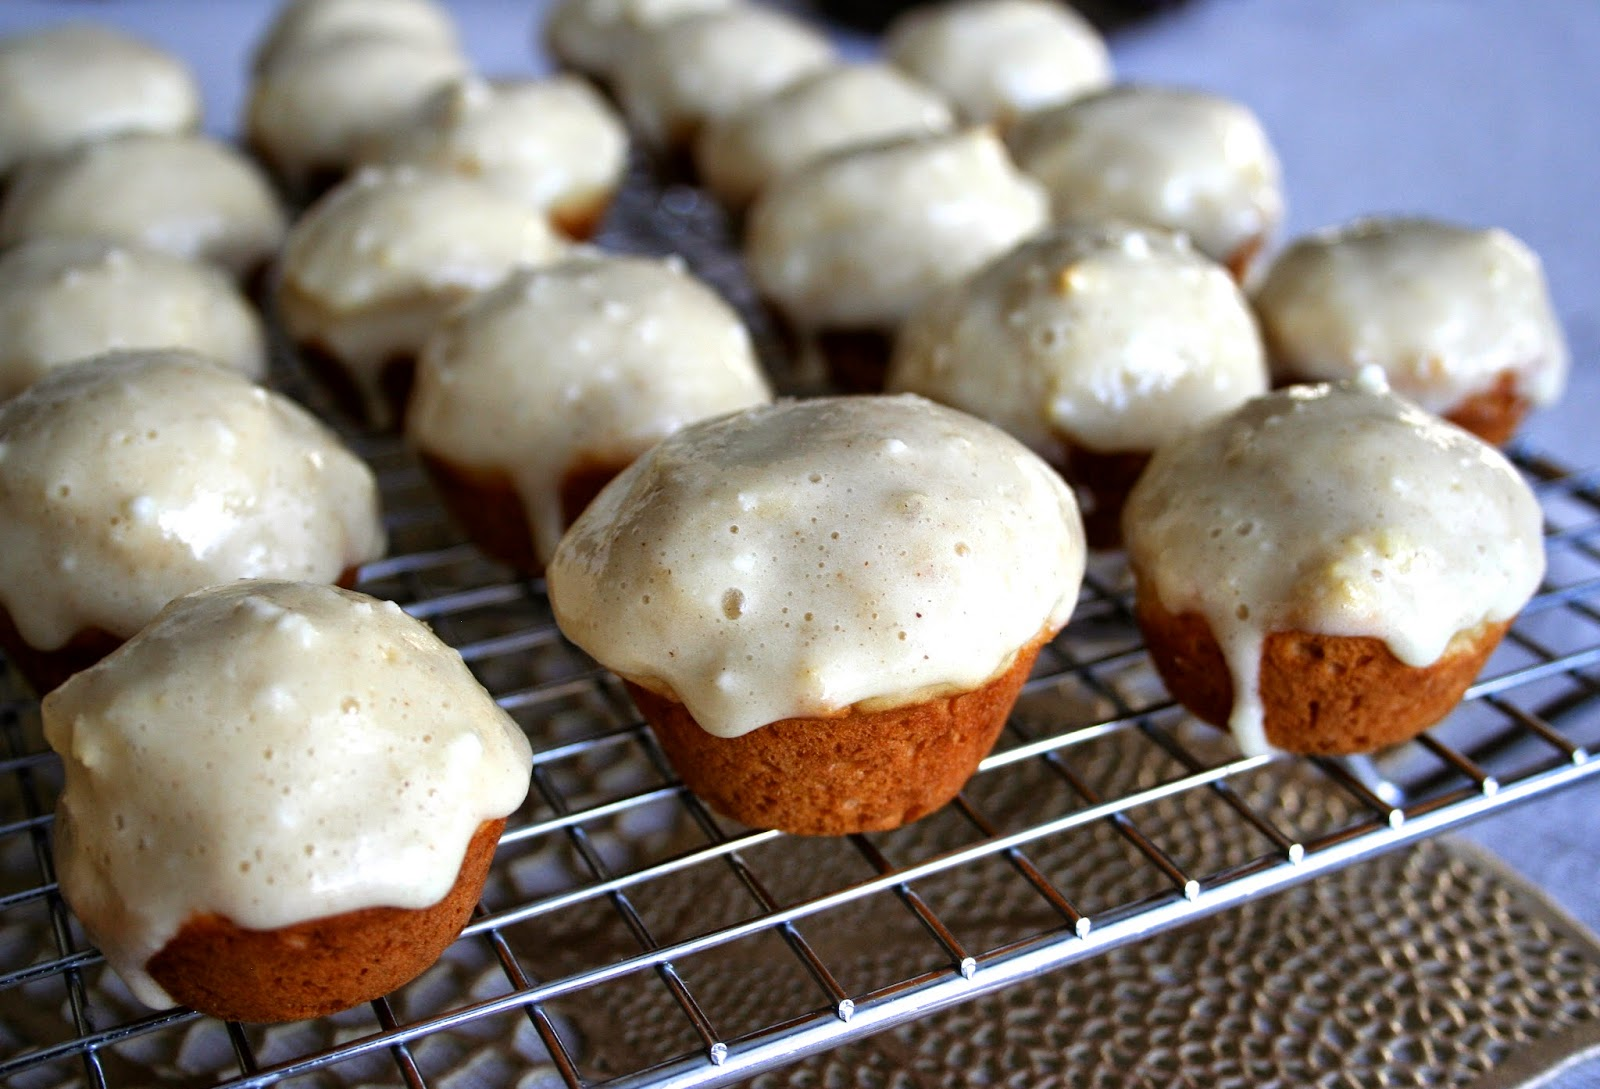 For the Love of Food: Mini Eggnog Doughnut Muffins